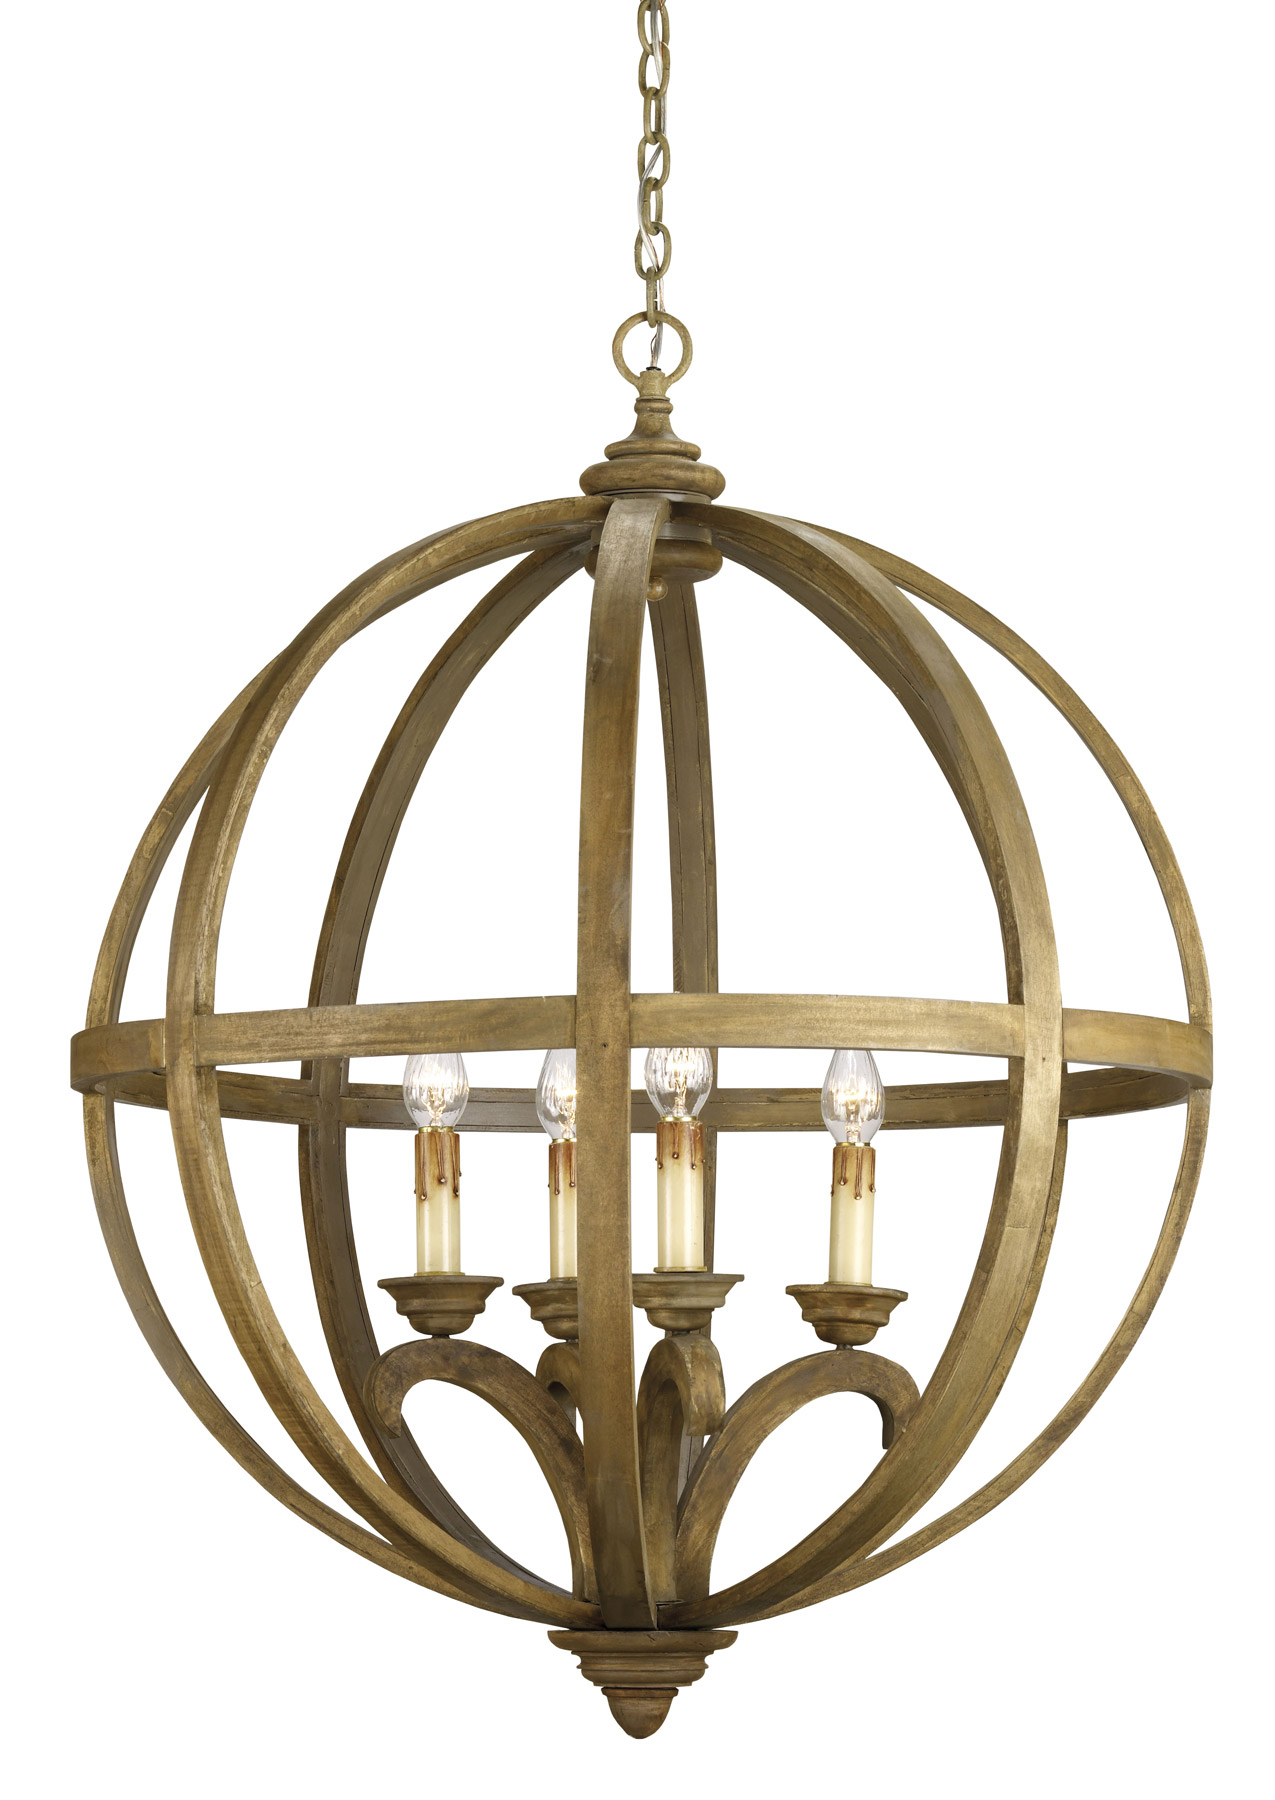 and pany 9015 Axel Four Light Orb Chandelier